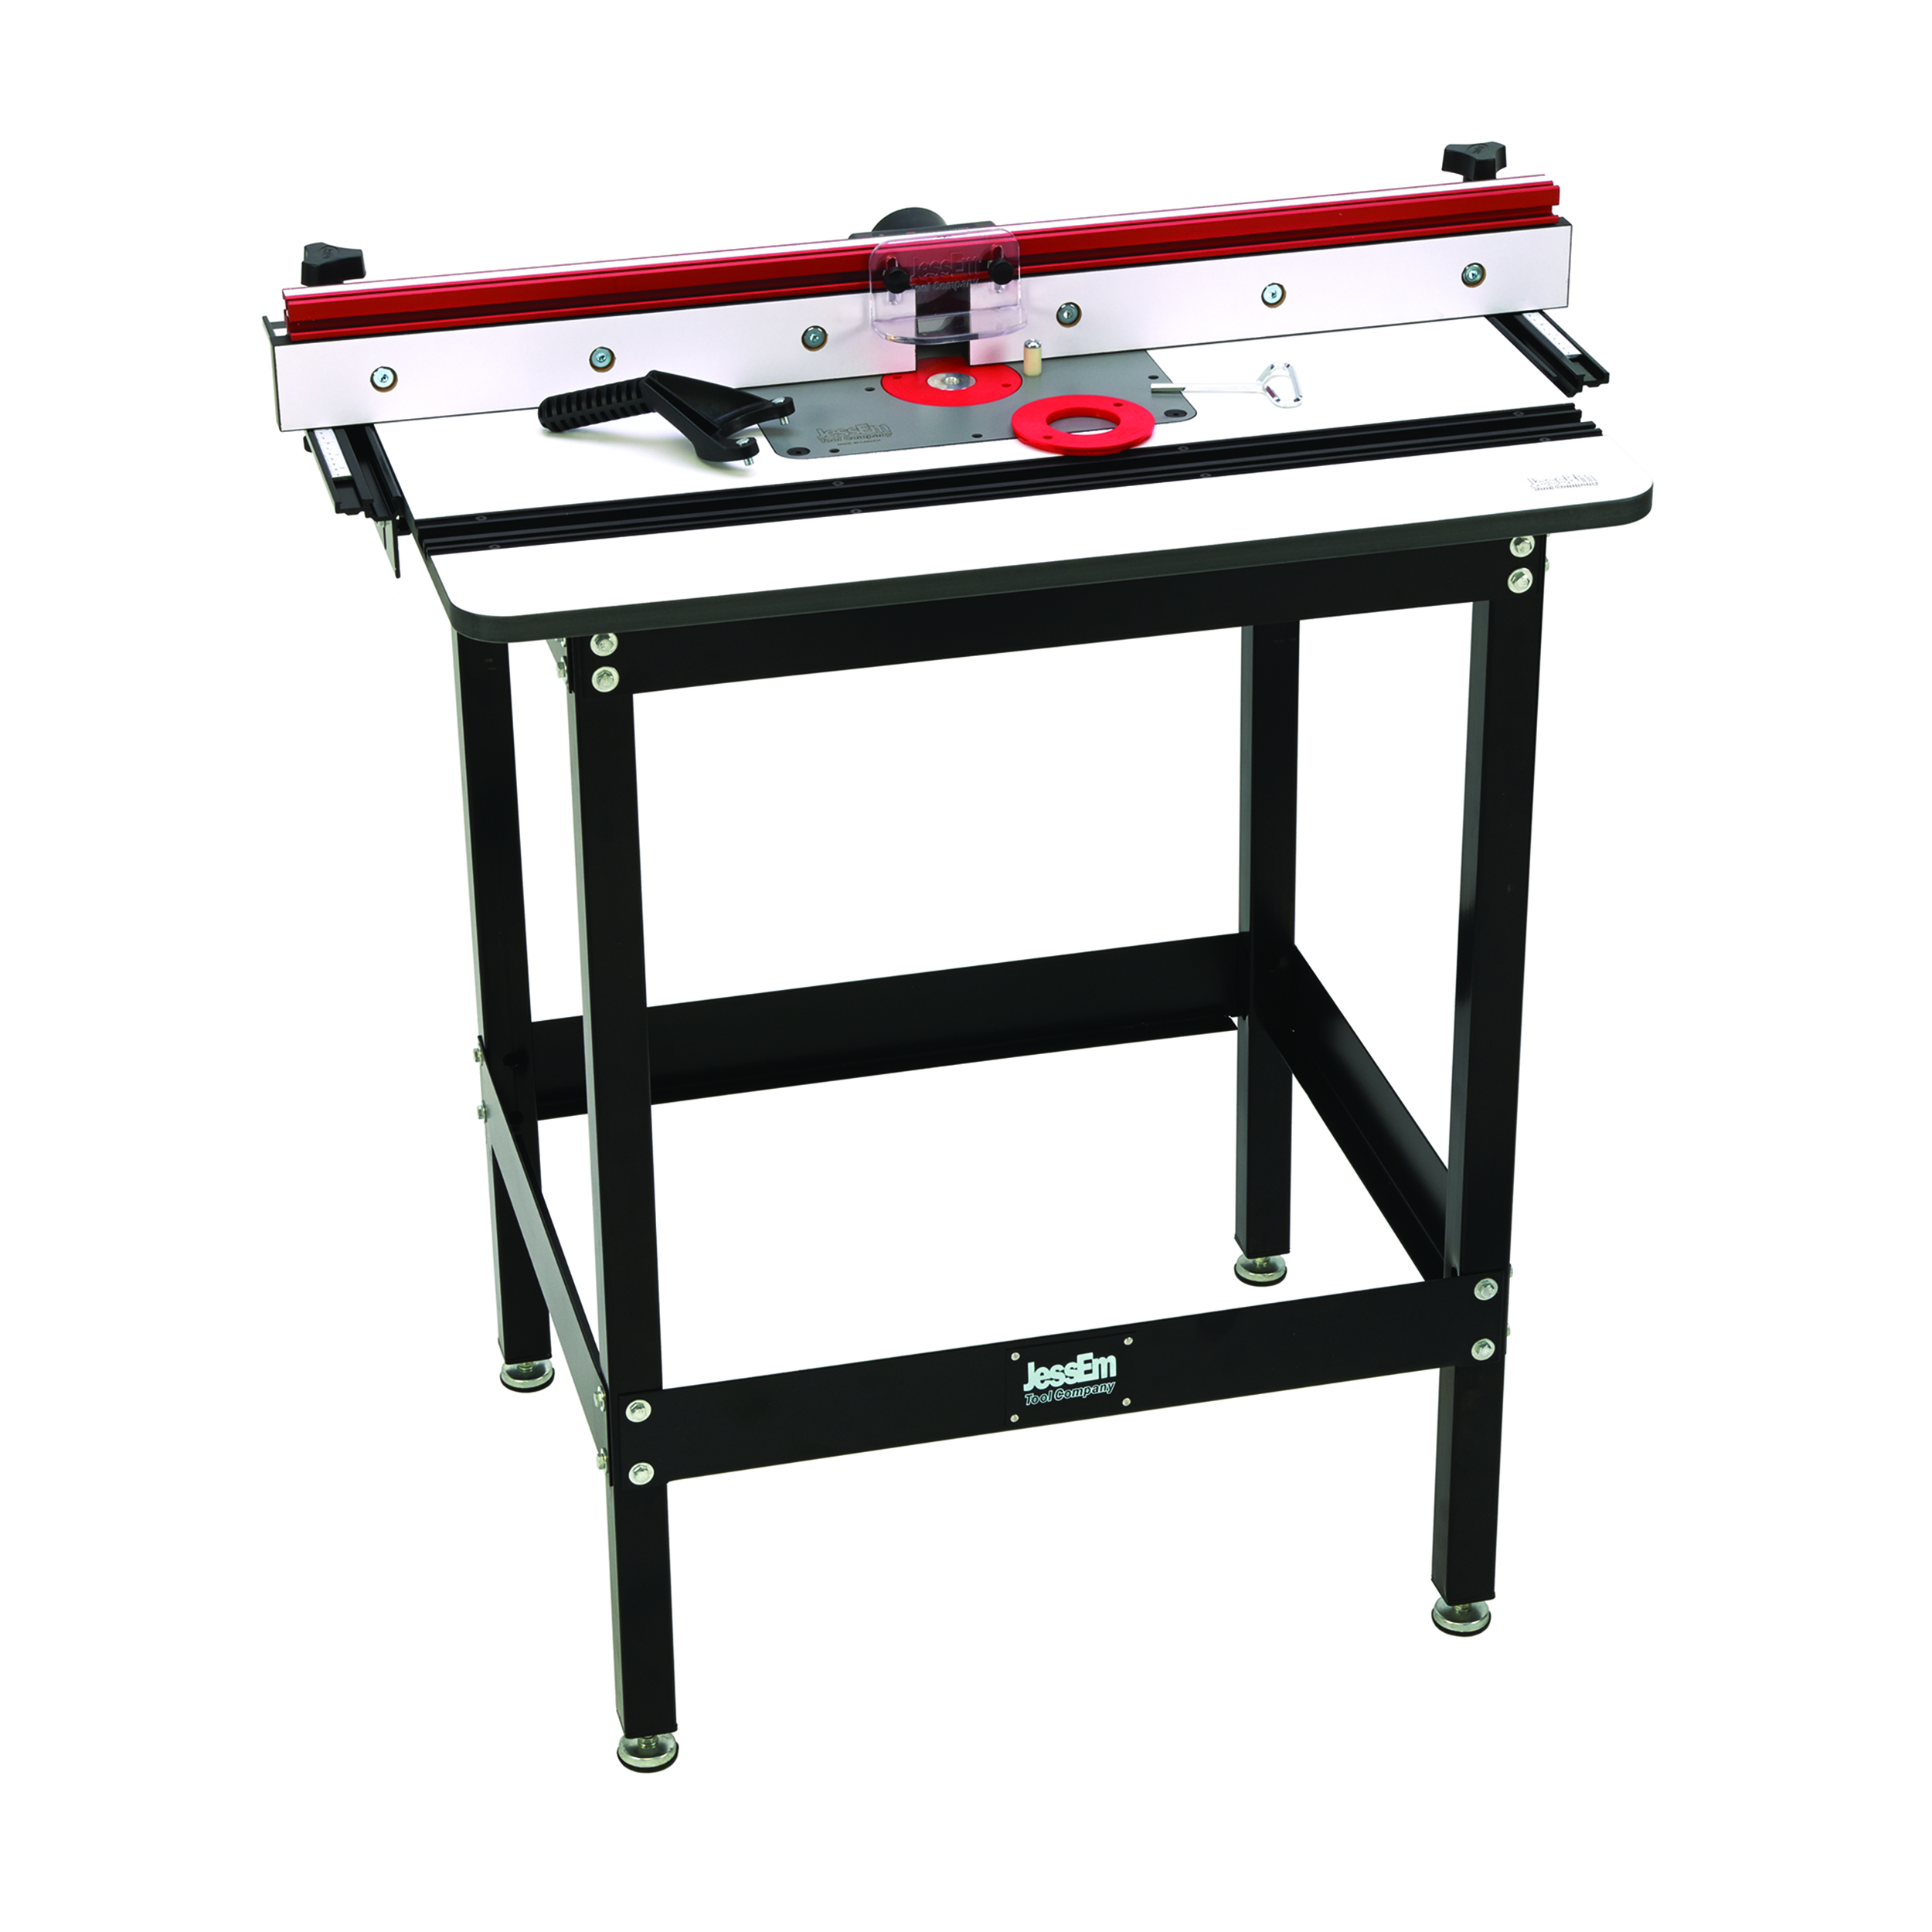 JESSEM Rout-R-Plate Included Router Table System with Phenolic Top